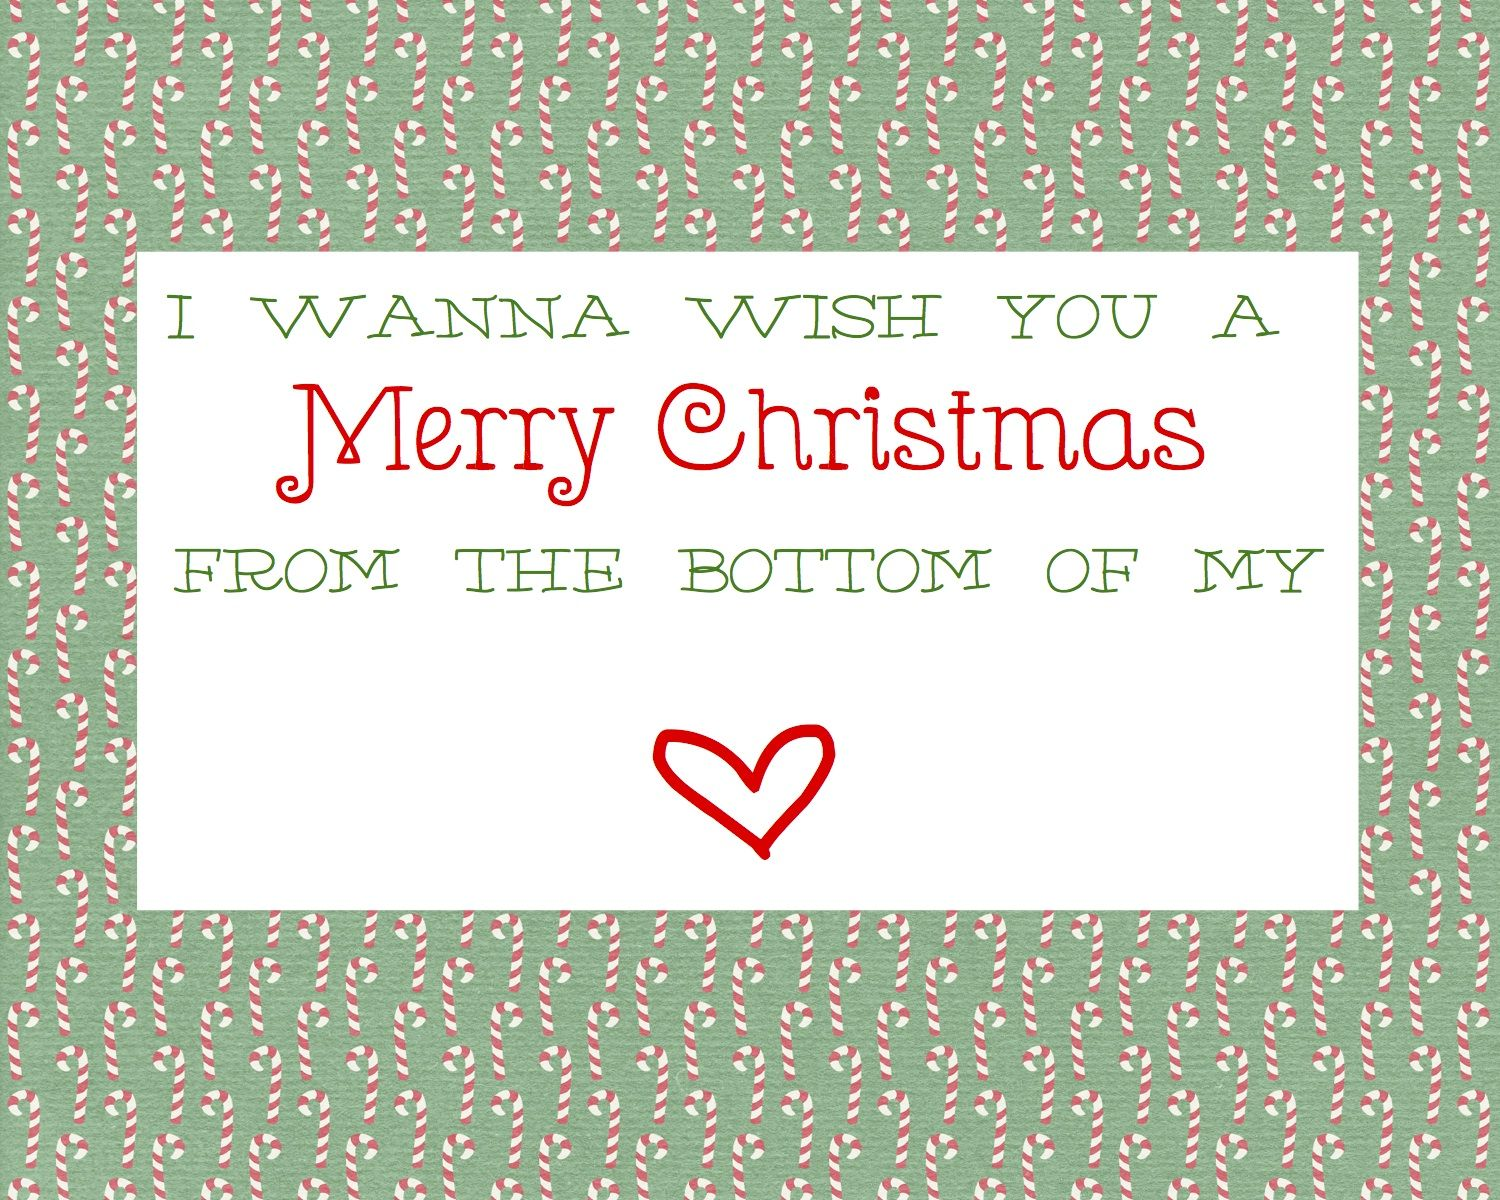 I Wanna Wish You A Merry Christmas From The Bottom Of My Heart With Images Merry Christmas Merry Christmas